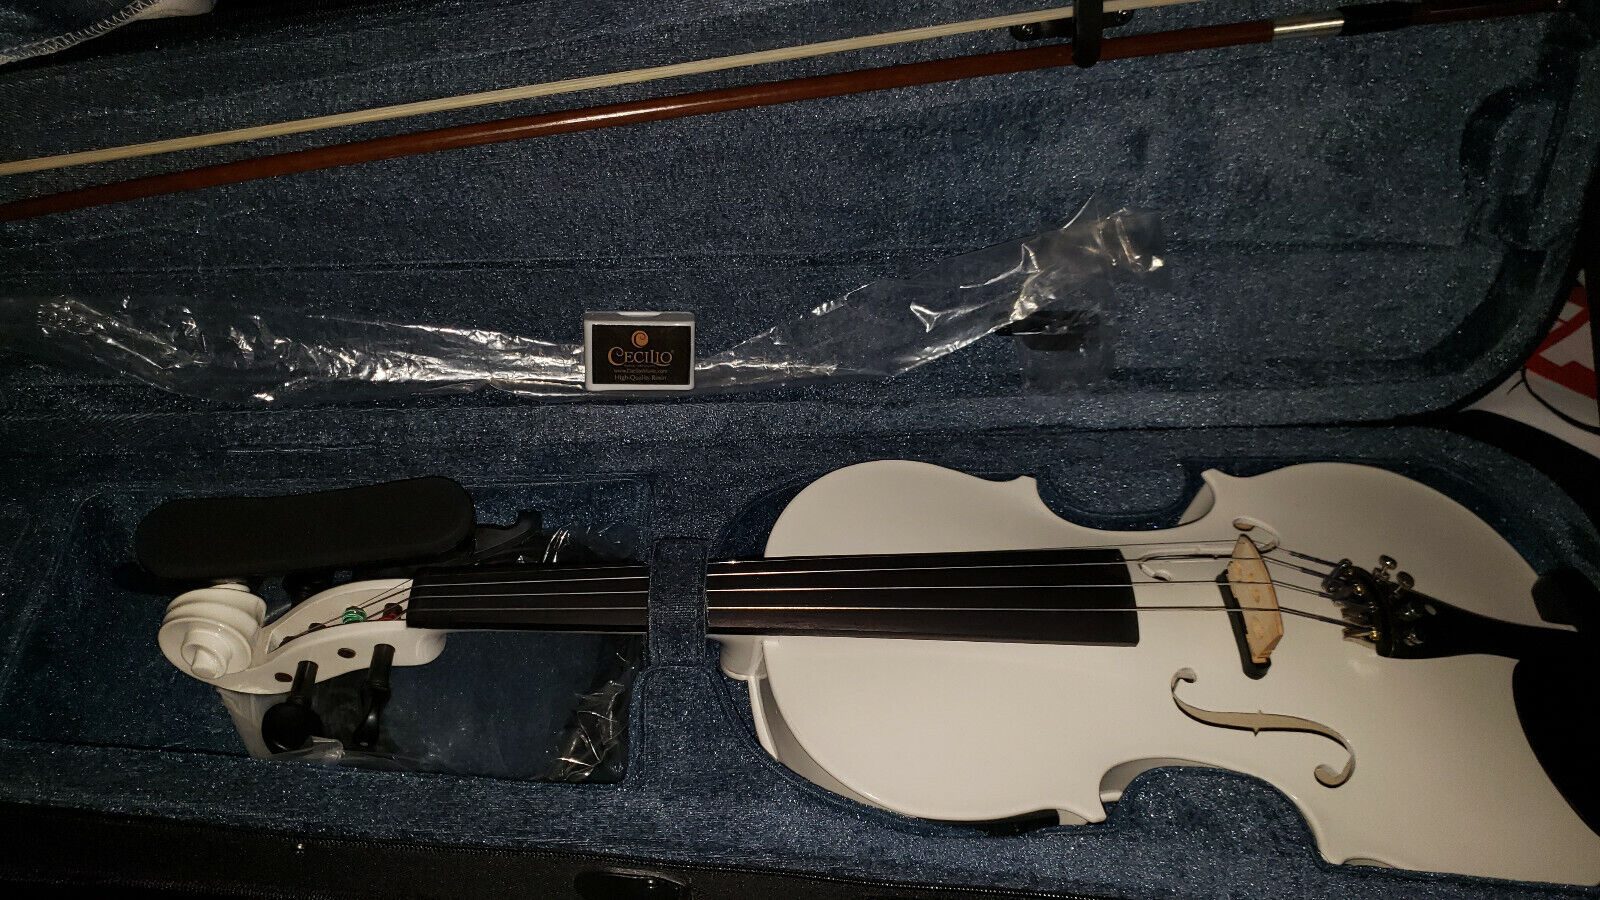 CECILIO SIZE 4/4 WHITE ACOUSTIC ELECTRIC VIOLIN WITH BOW, CASE, AND ACCESSORIES - $70.00